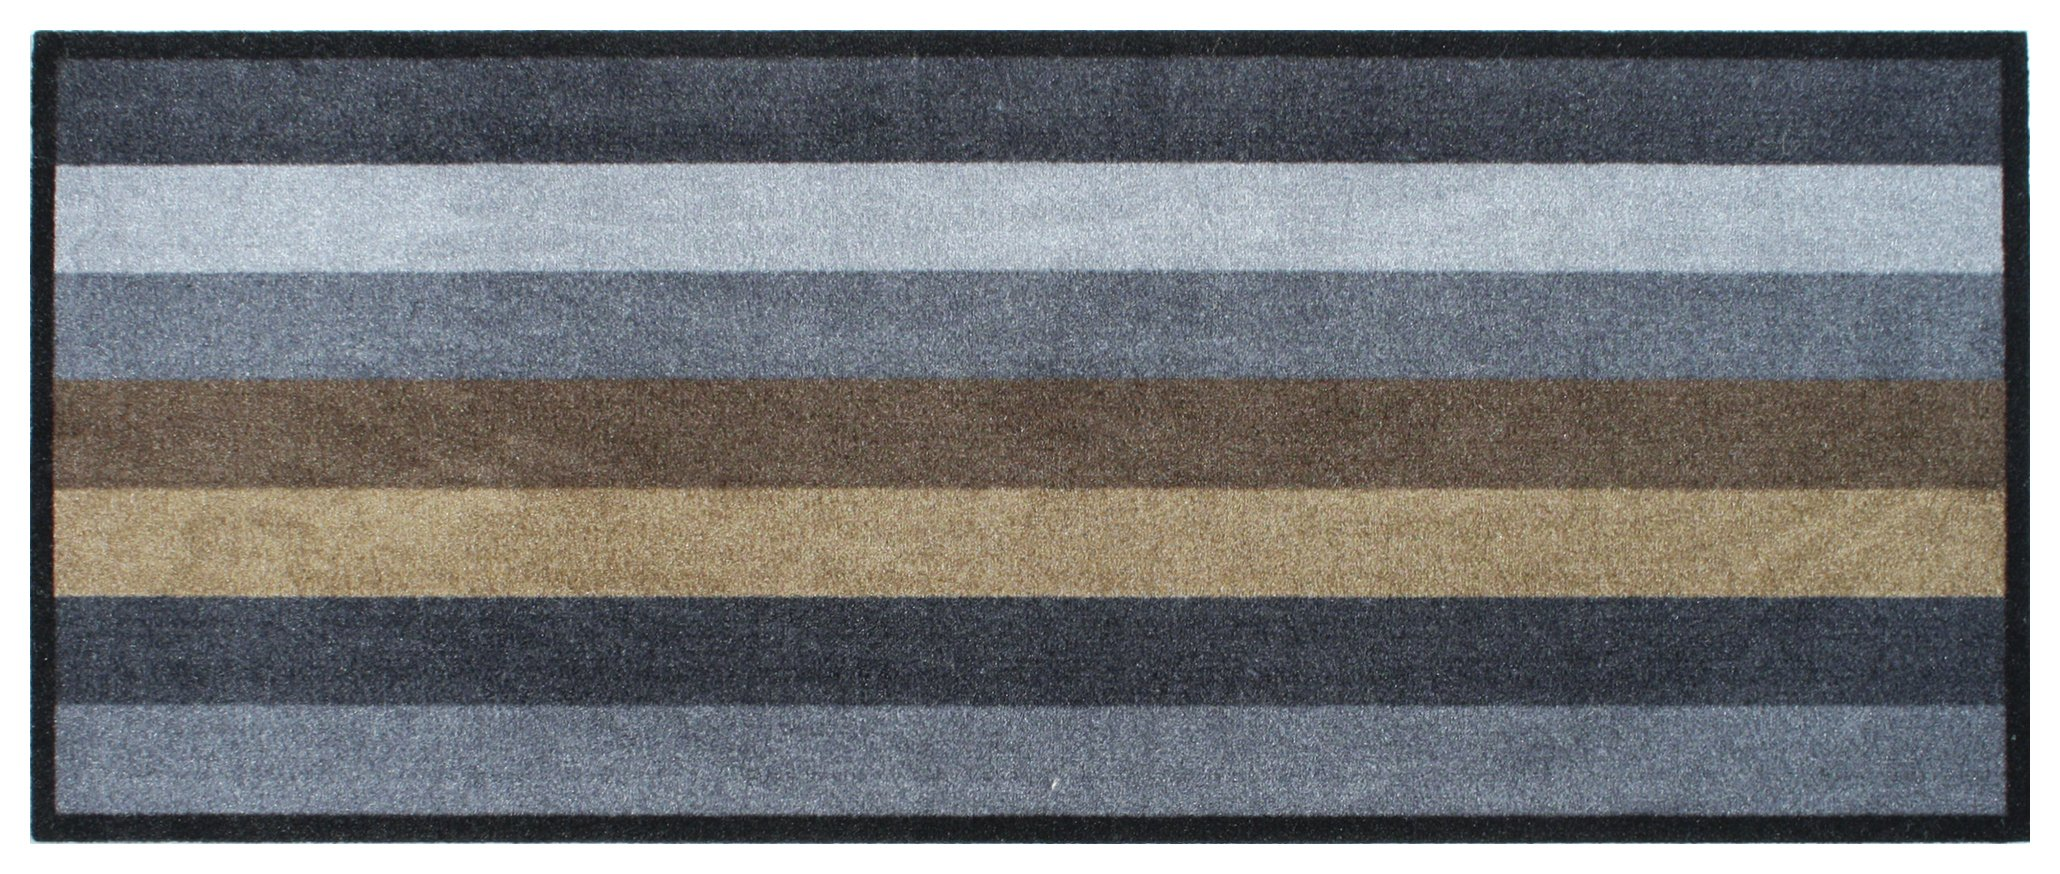 Image of Dandy Stripy Kitchen Runner - 120x50cm.